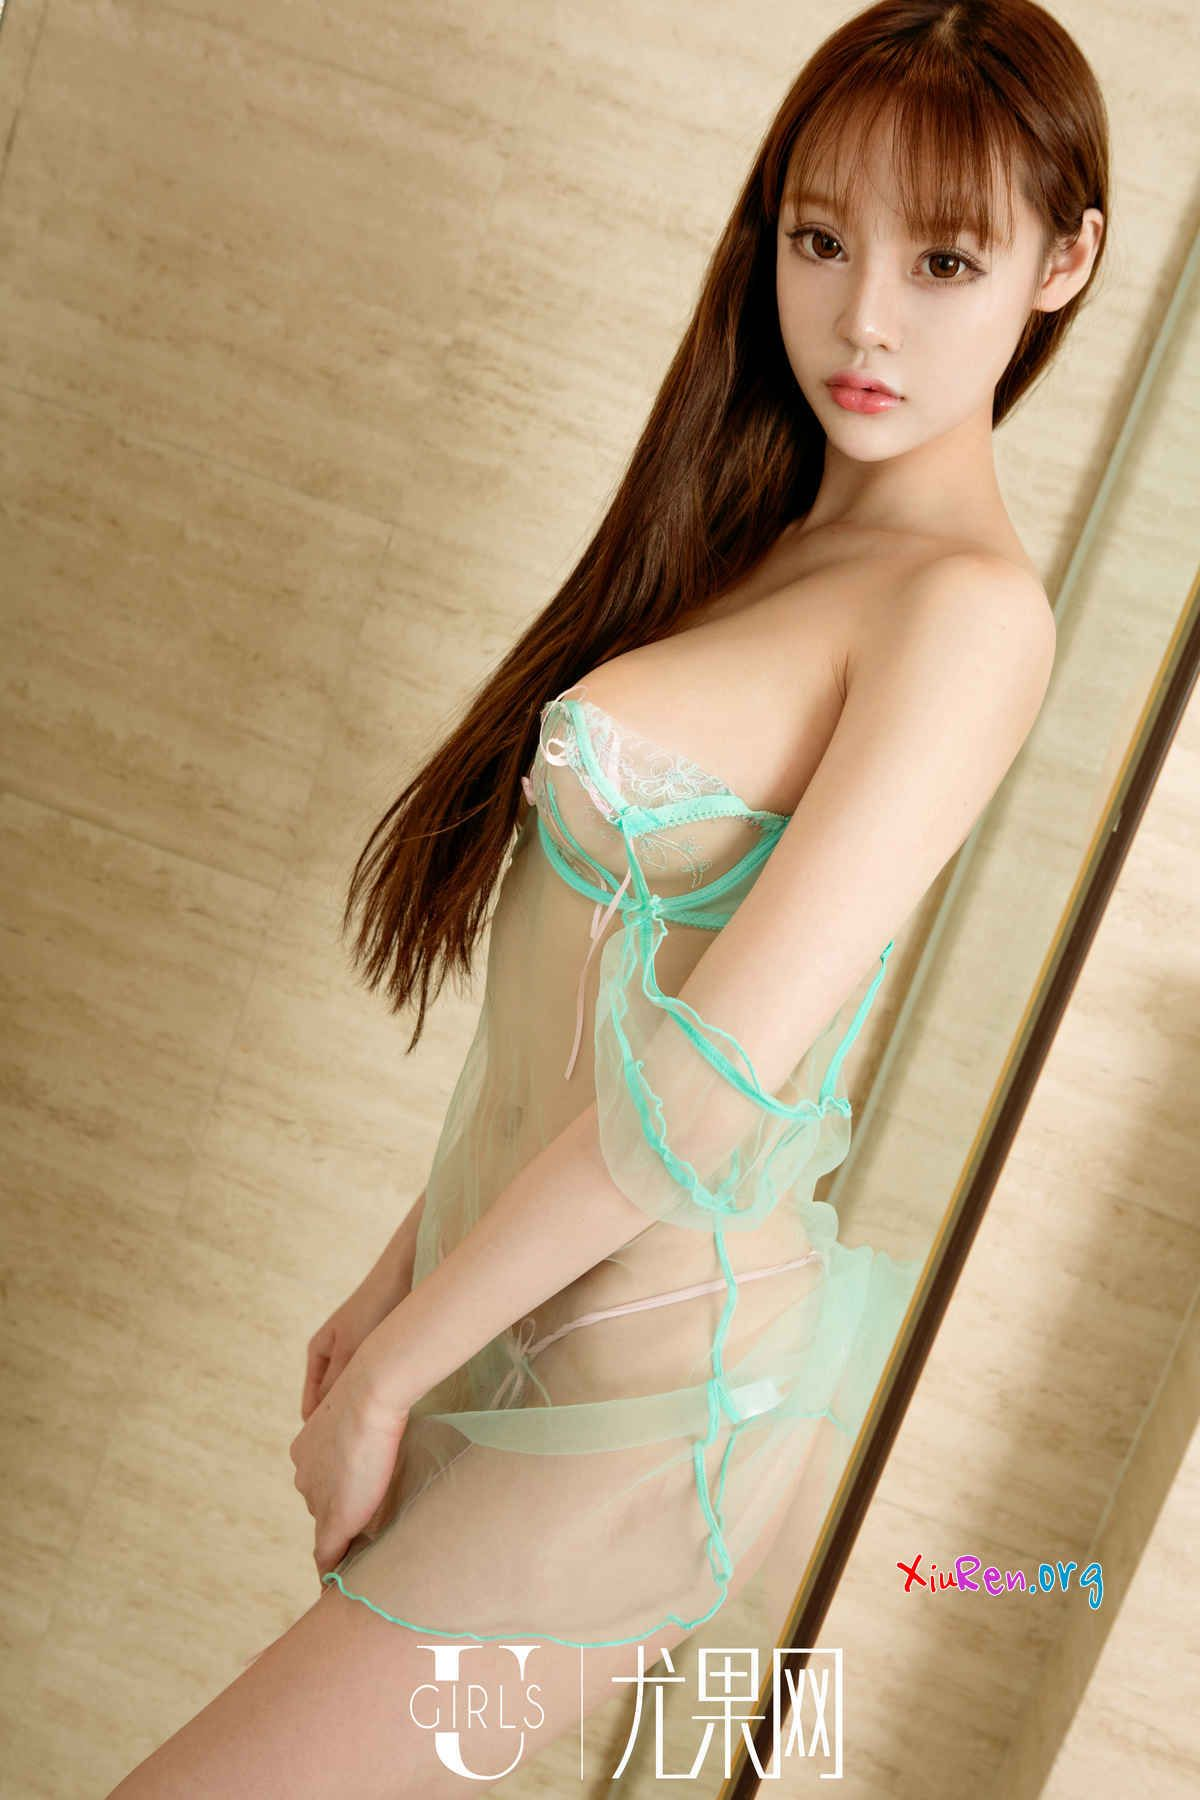 Hot asian girls wet bathing suit can suggest